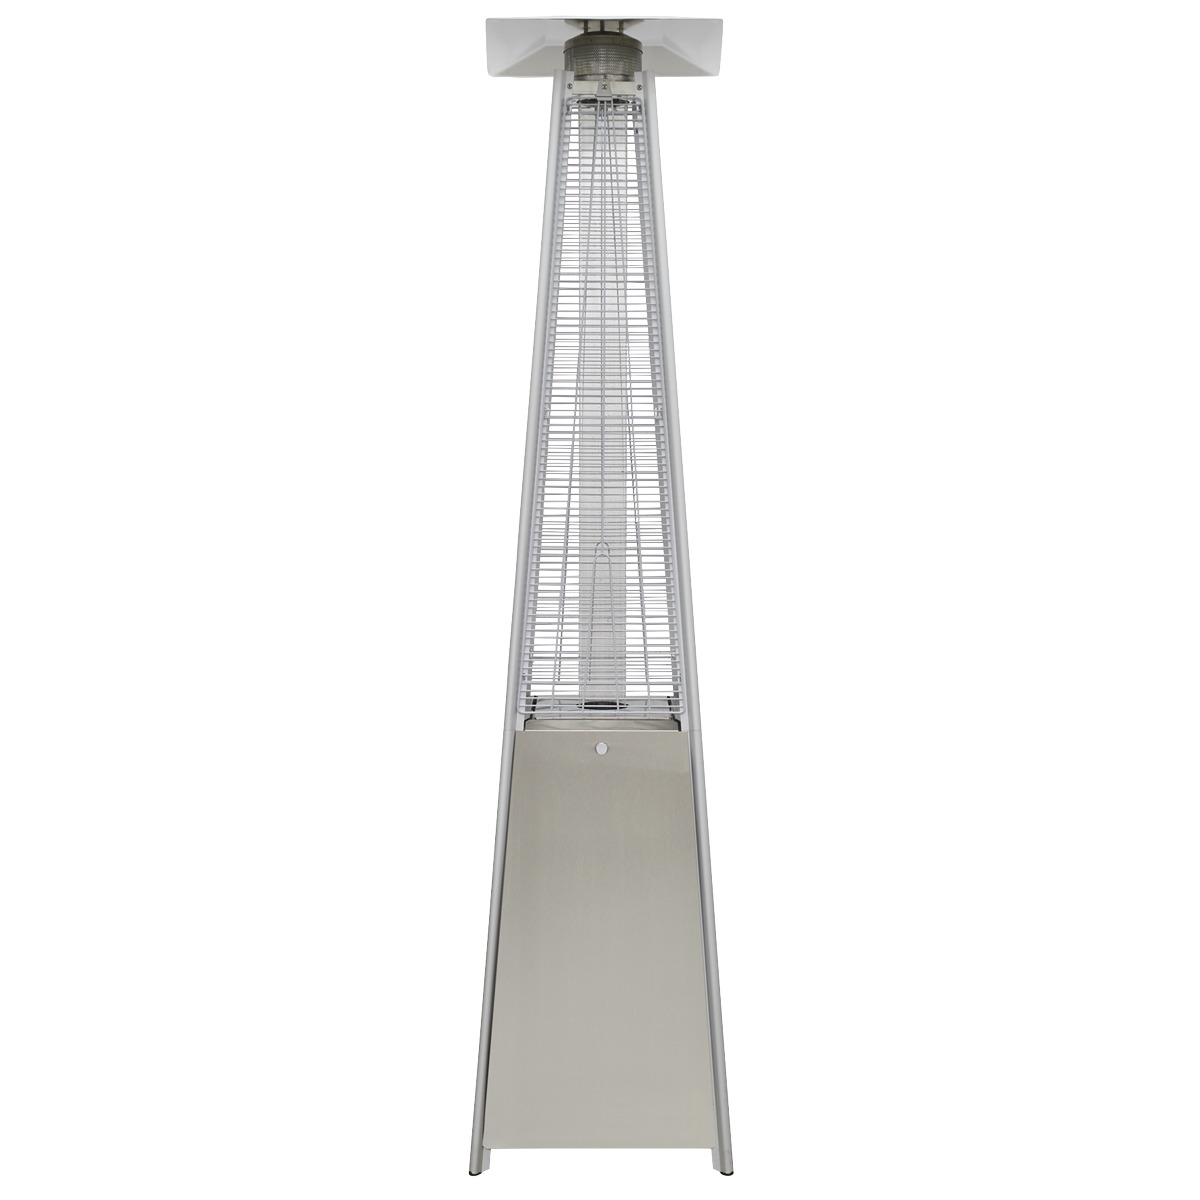 Dellonda Pyramid Gas Patio Heater 13kW Commercial/Garden Use, Stainless Steel